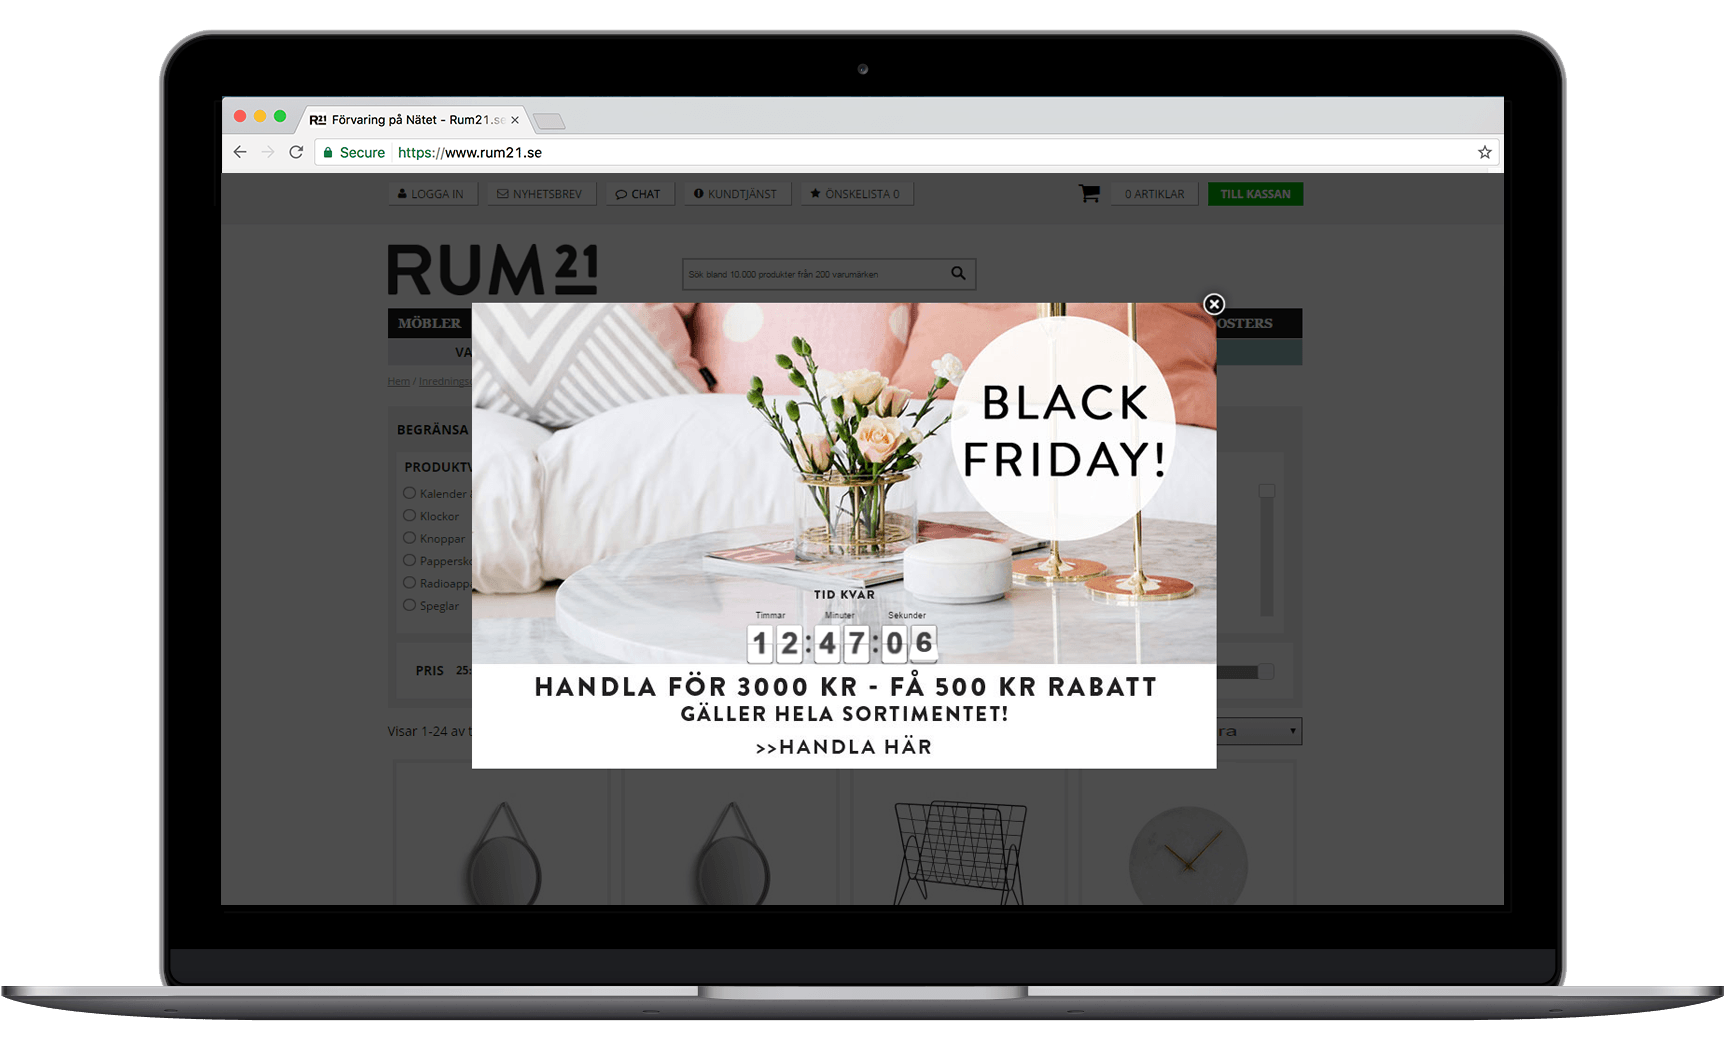 Homewear retailer Rum21 use a countdown timer on Black Friday